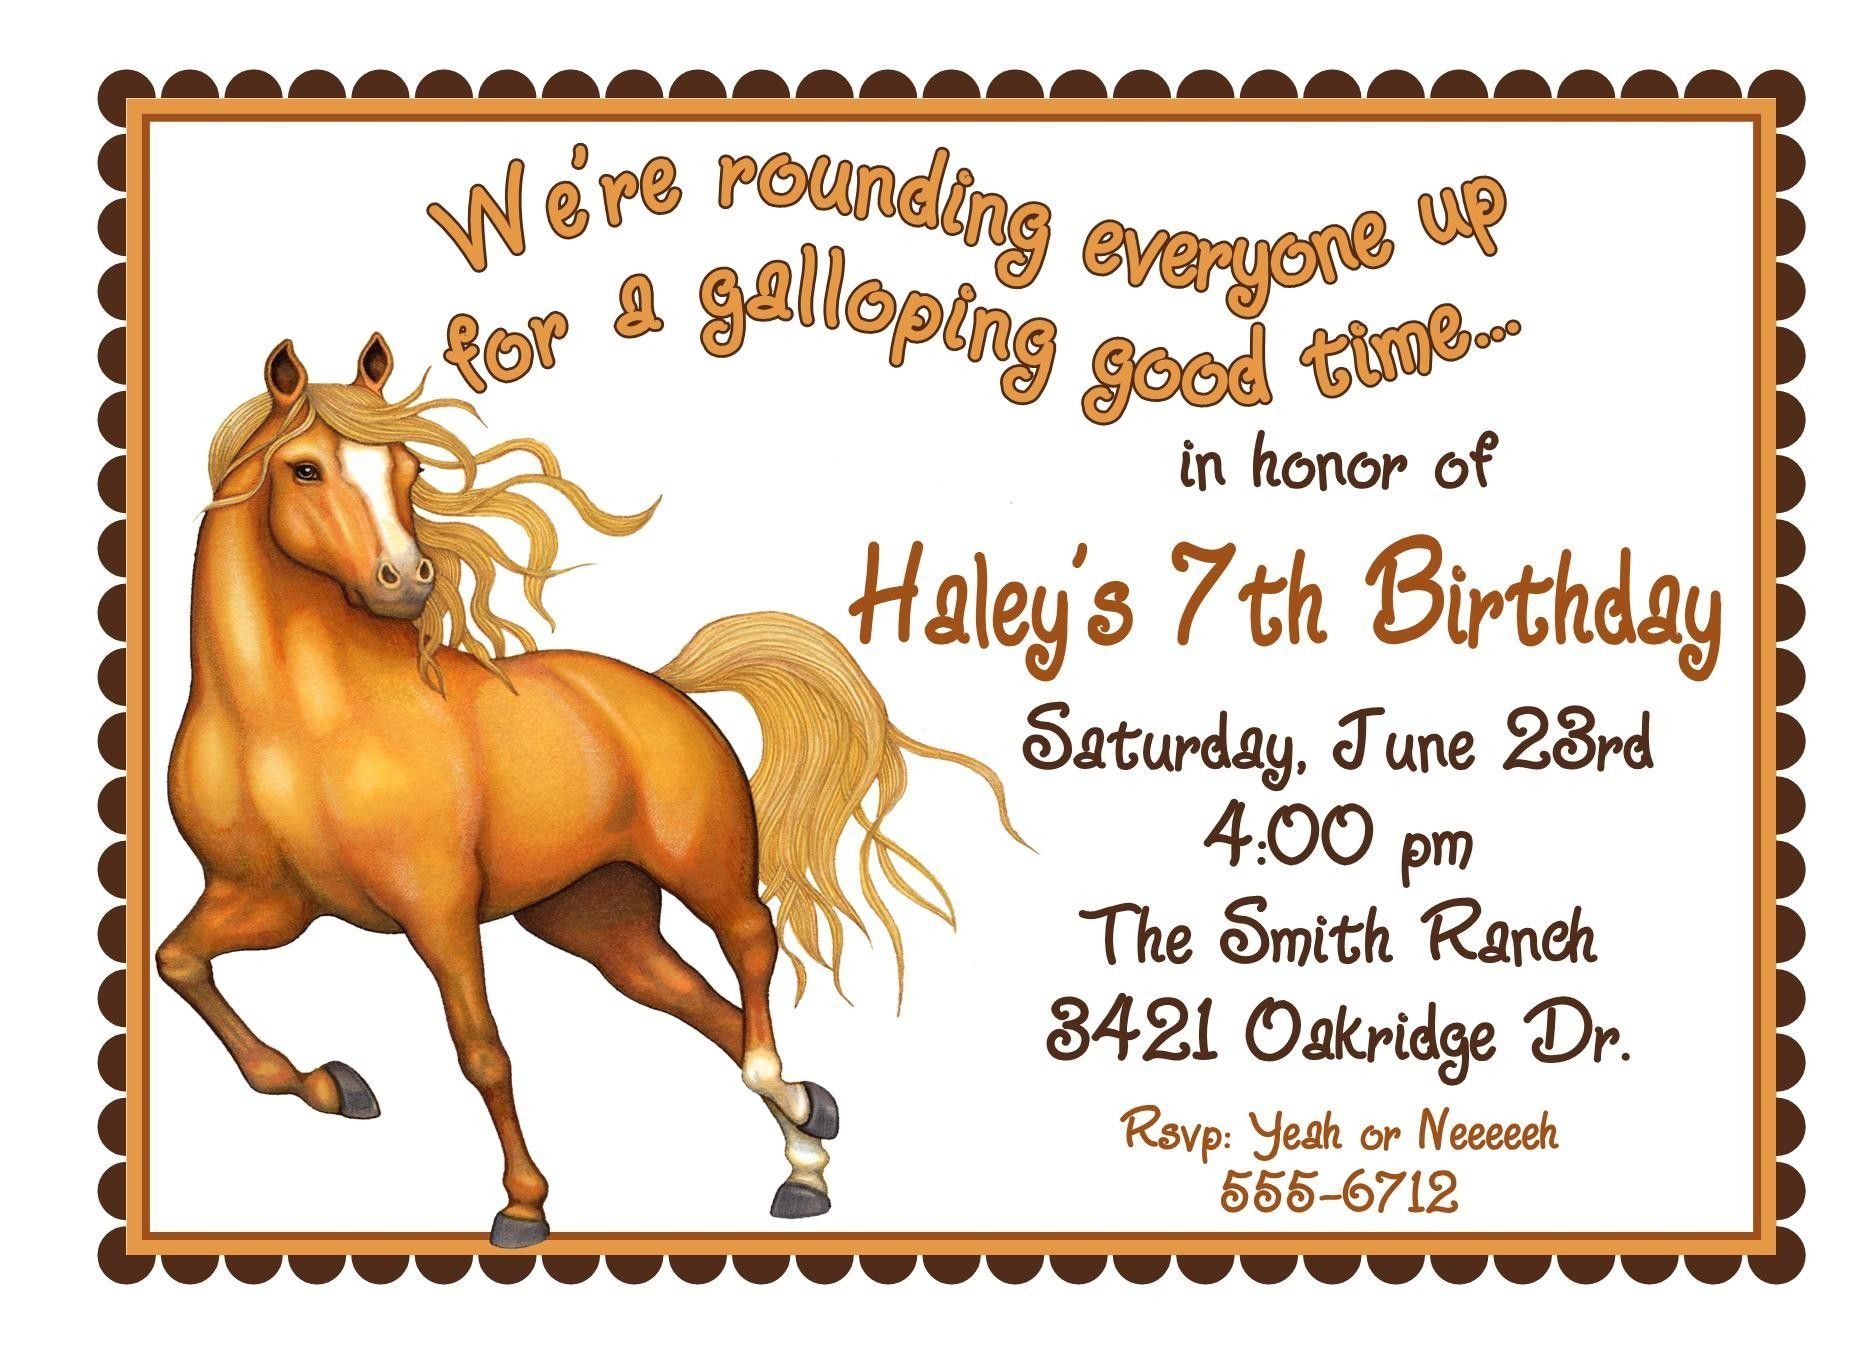 Xfree Printable Horse Birthday Invitations Pagespeed Ic Ndjgmxw